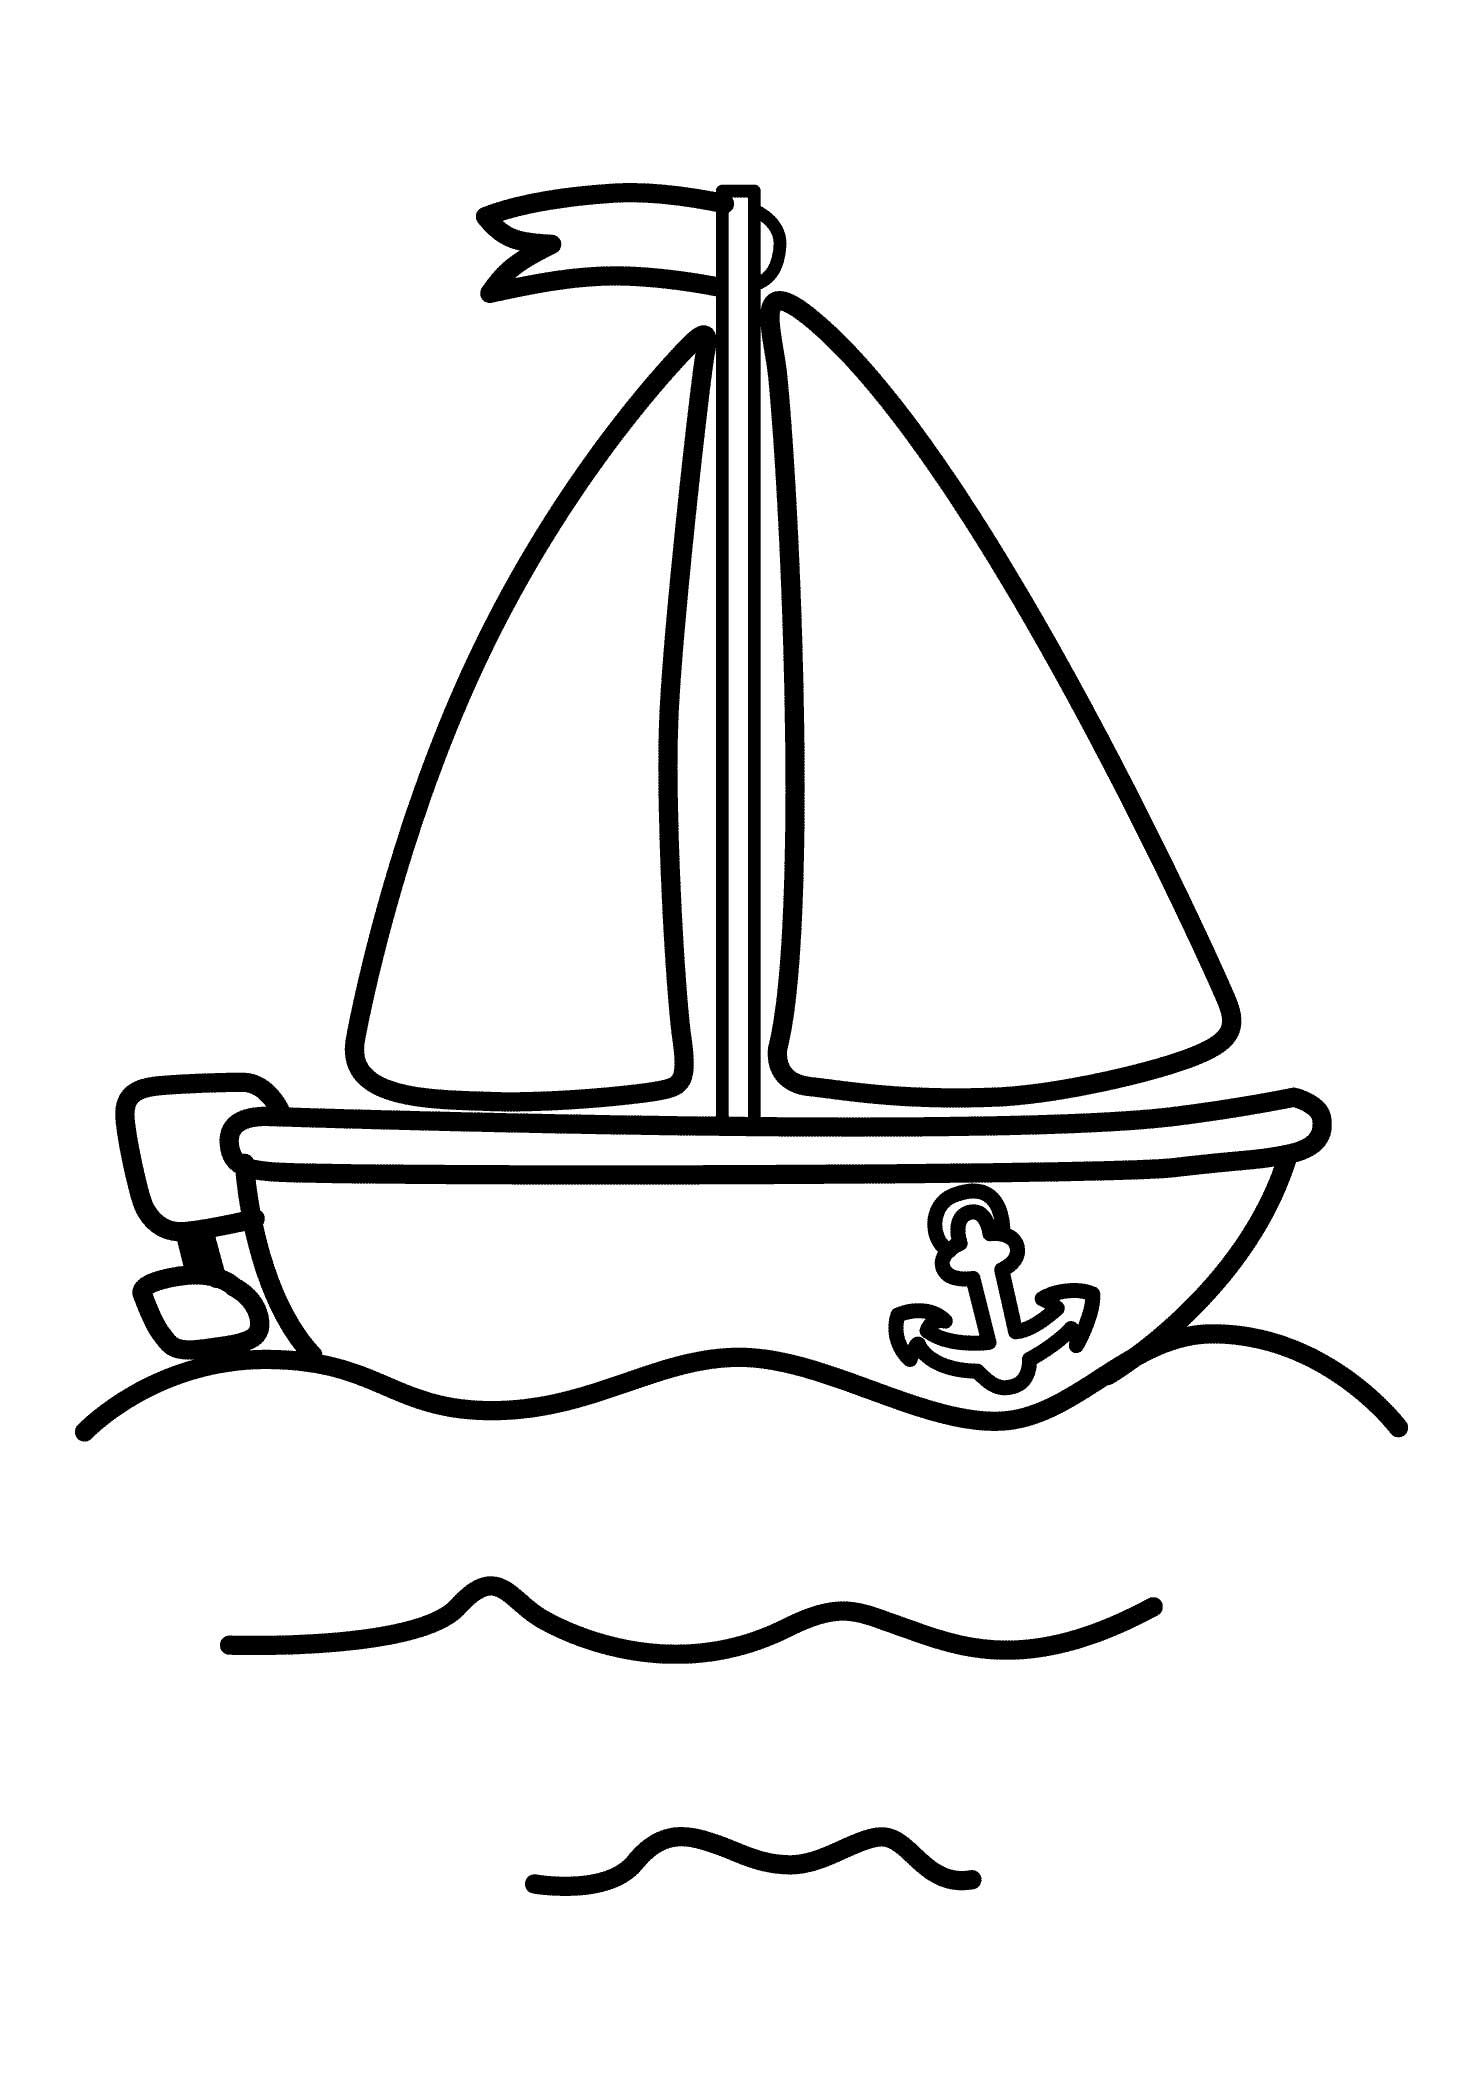 coloring boat for kids pirate ship coloring pages to download and print for free for kids boat coloring